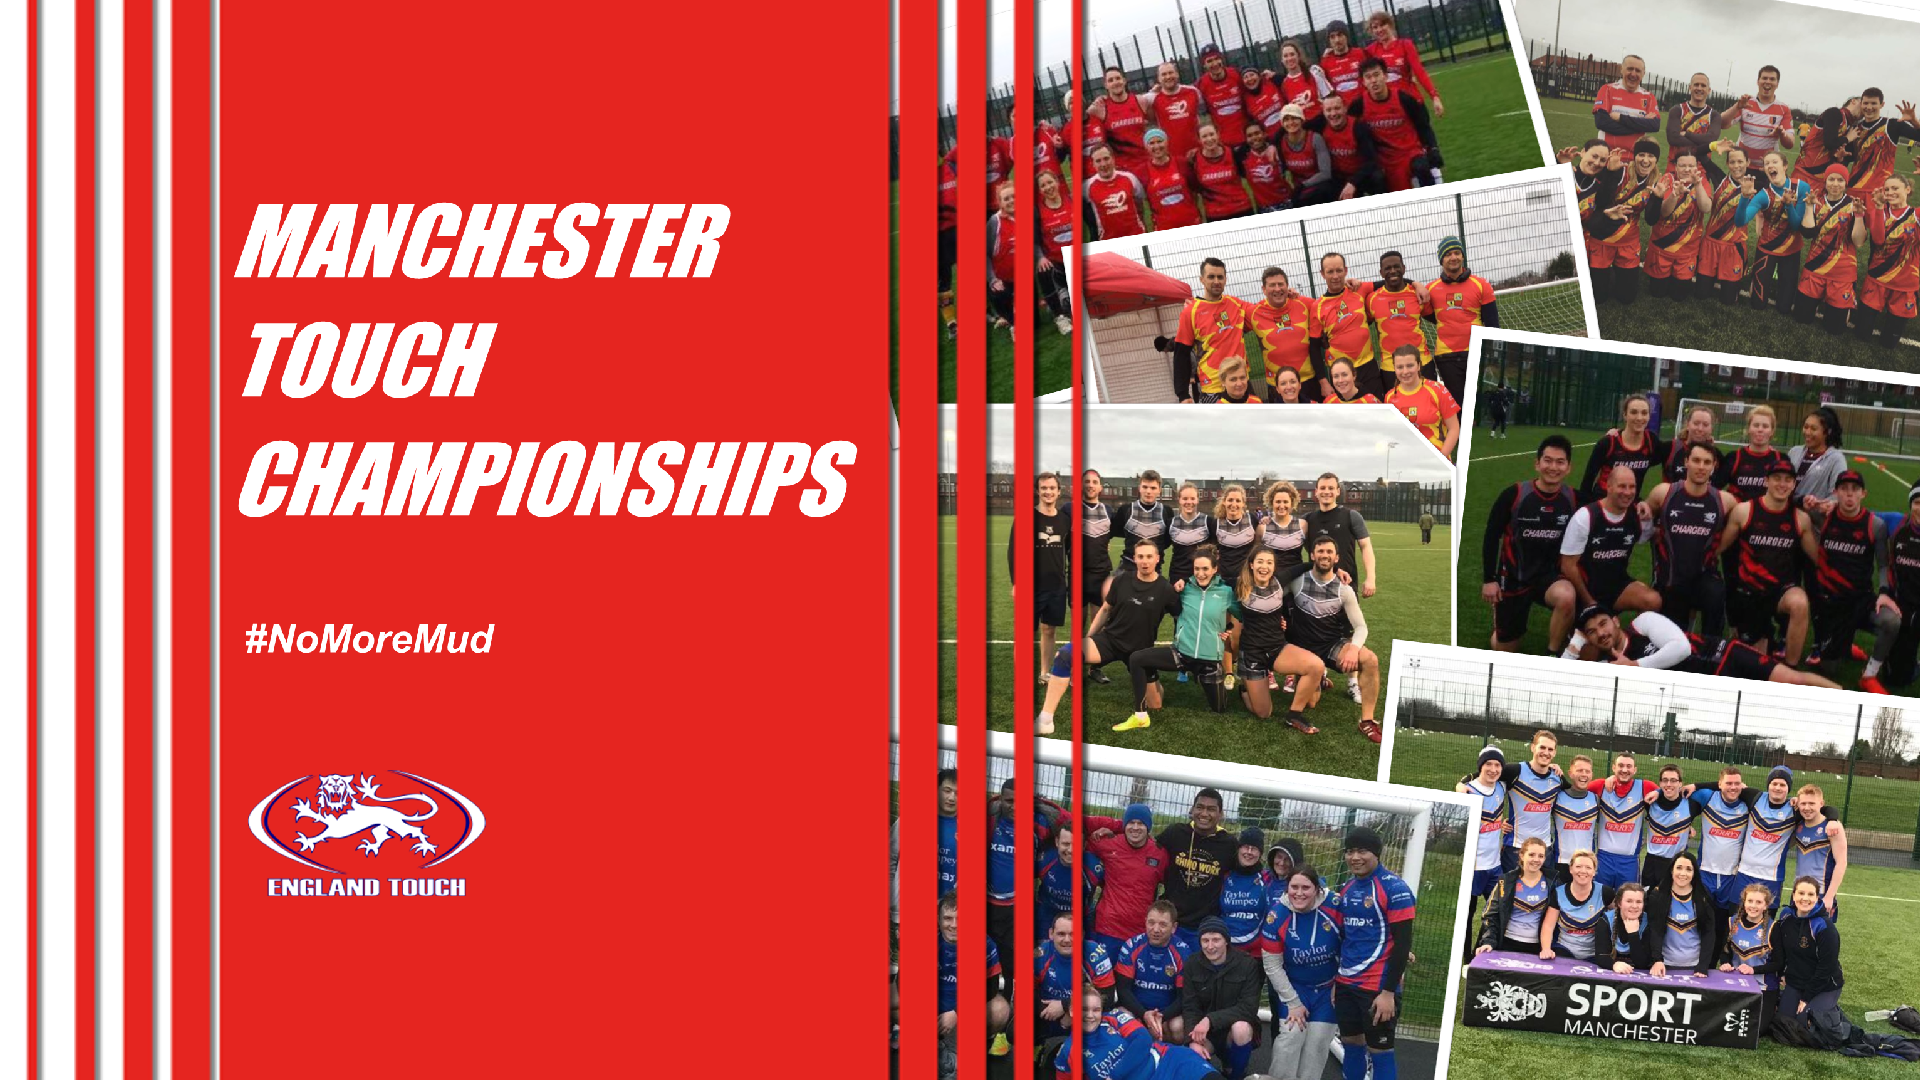 Manchester Touch Championships is a huge success